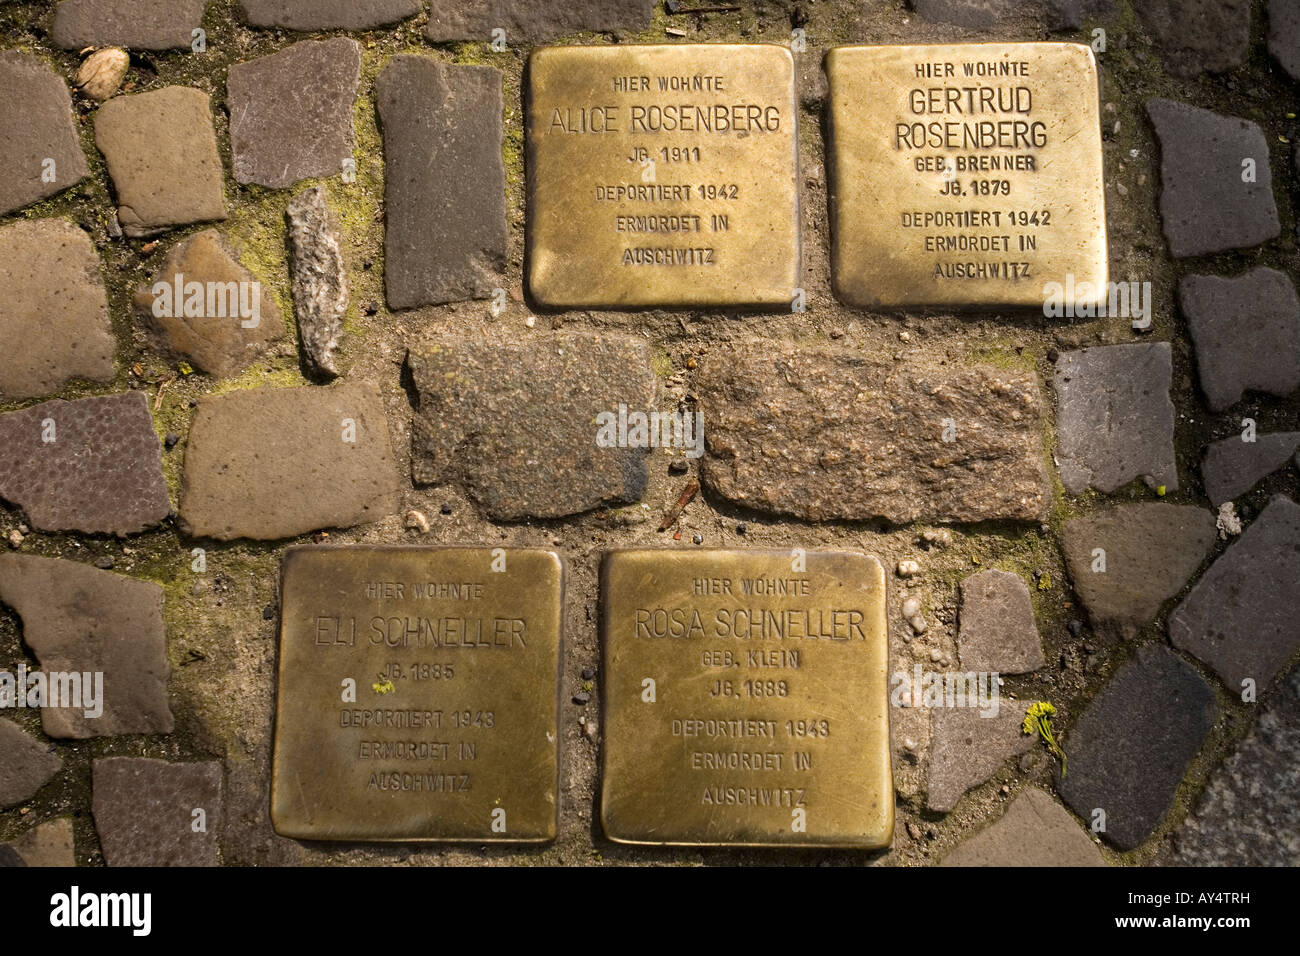 Stolpersteine on Grosse Hamburger Strasse, Berlin, Germany - Stock Image